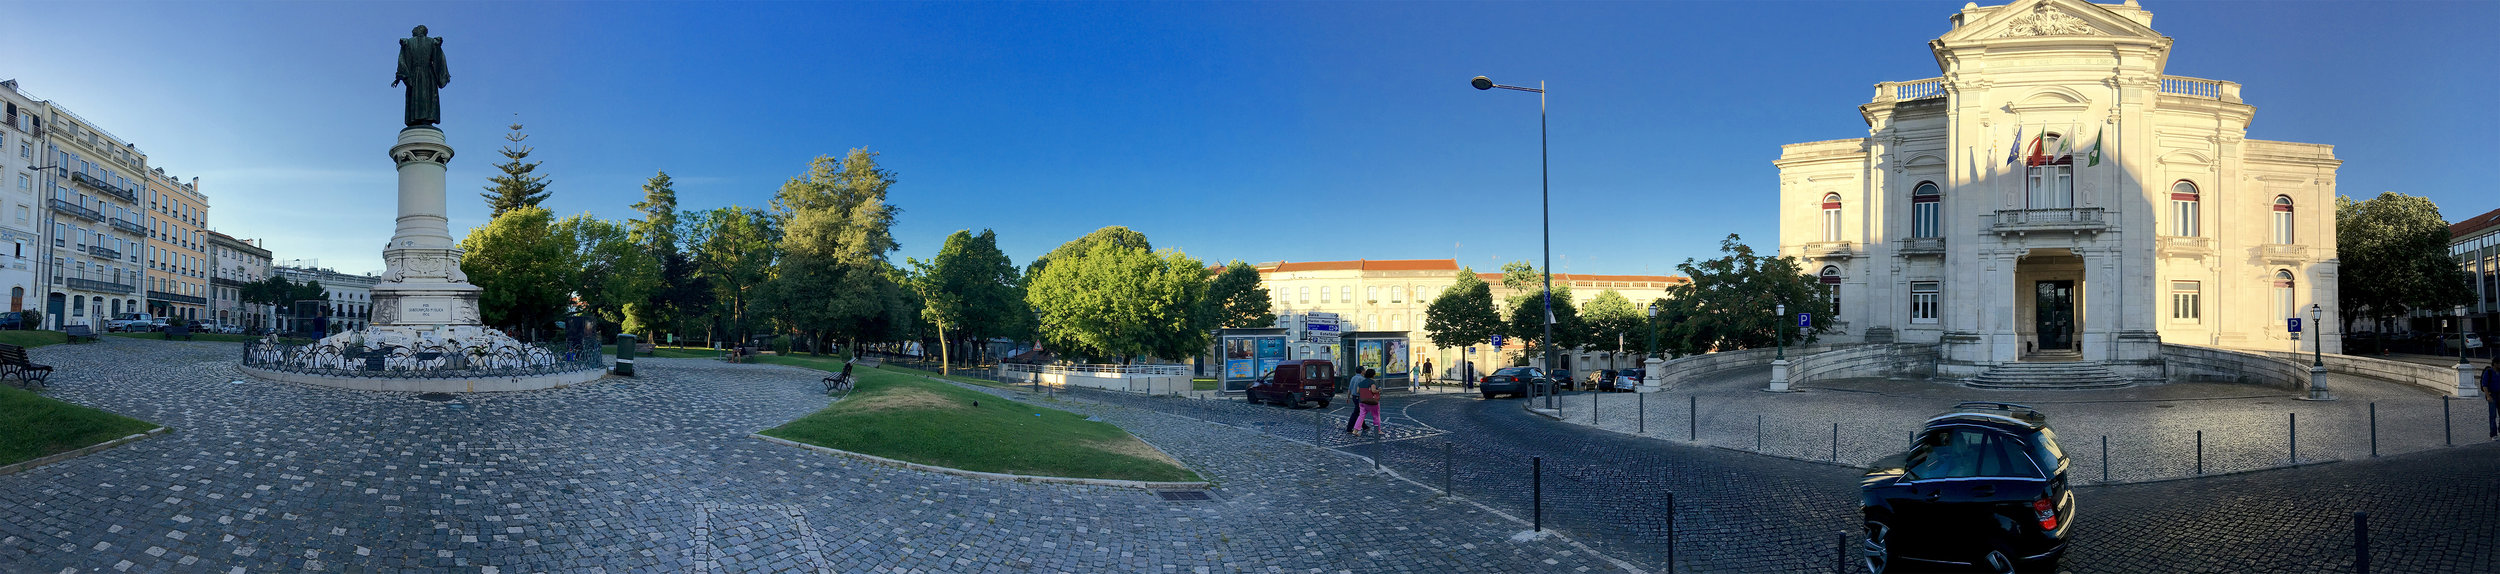 Panoramic View of the Square in Front of the Faculty of Medical Science